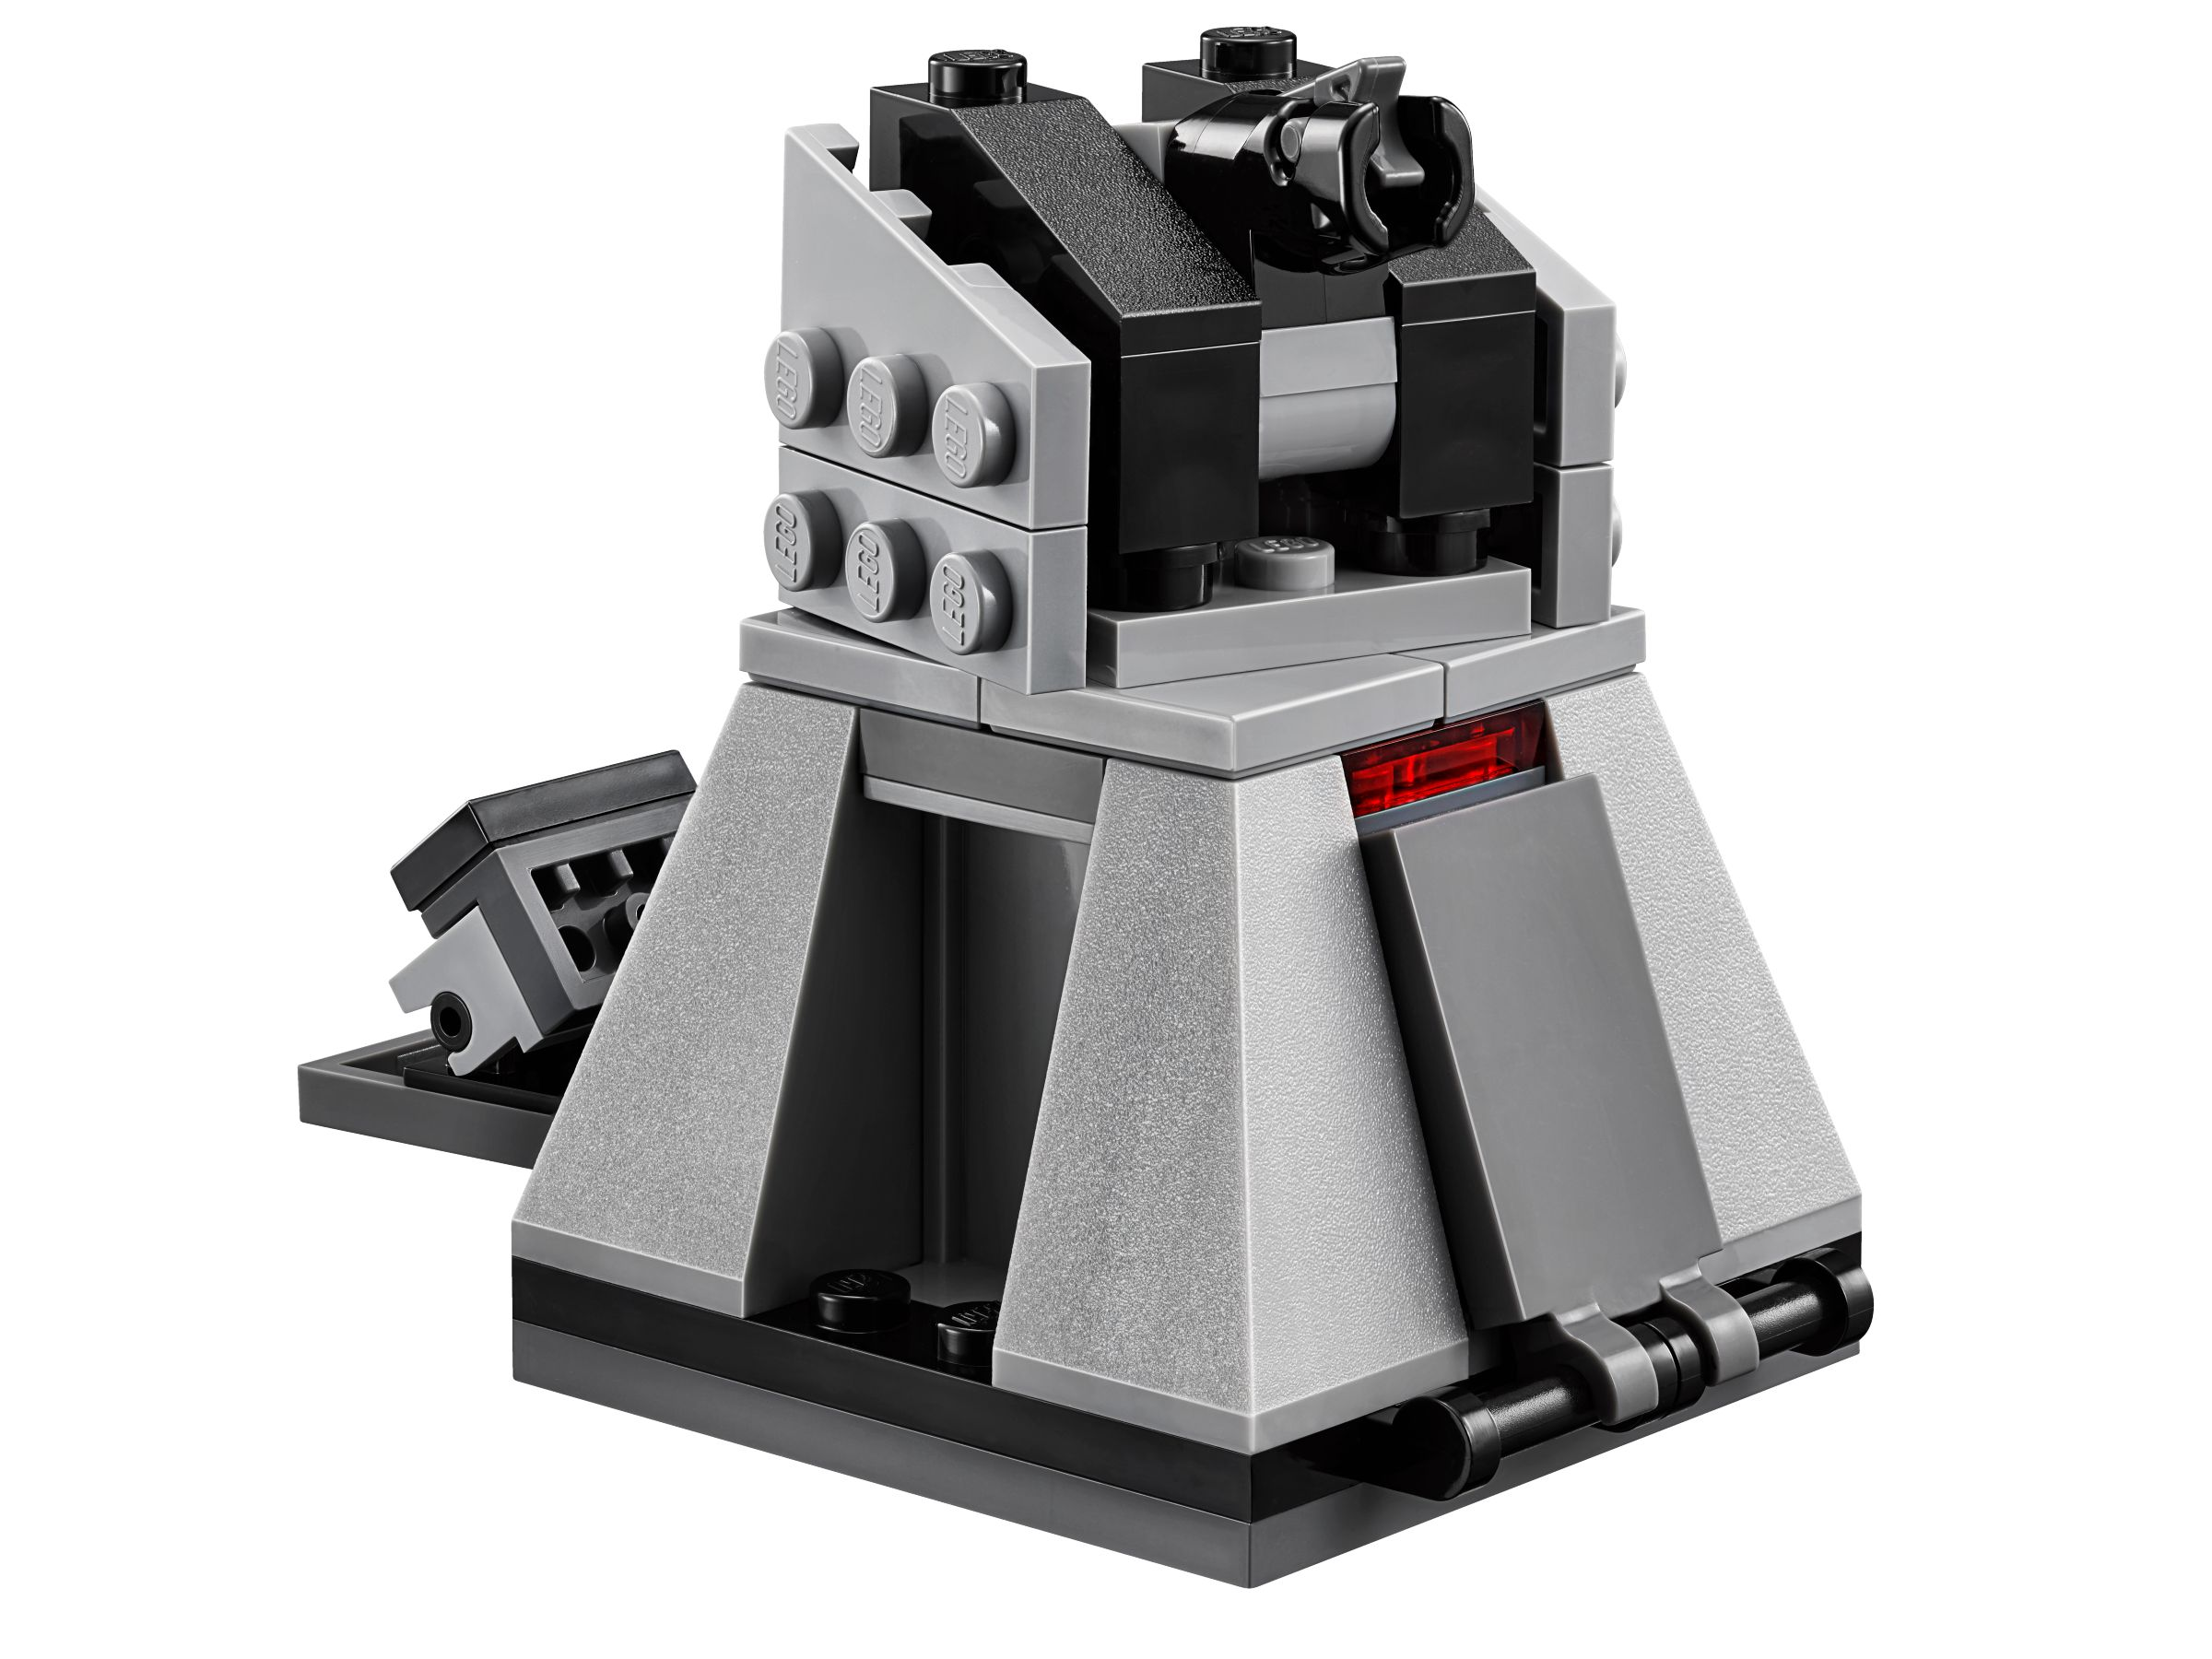 LEGO Star Wars 75132 First Order Battle Pack LEGO_75132_alt2.jpg